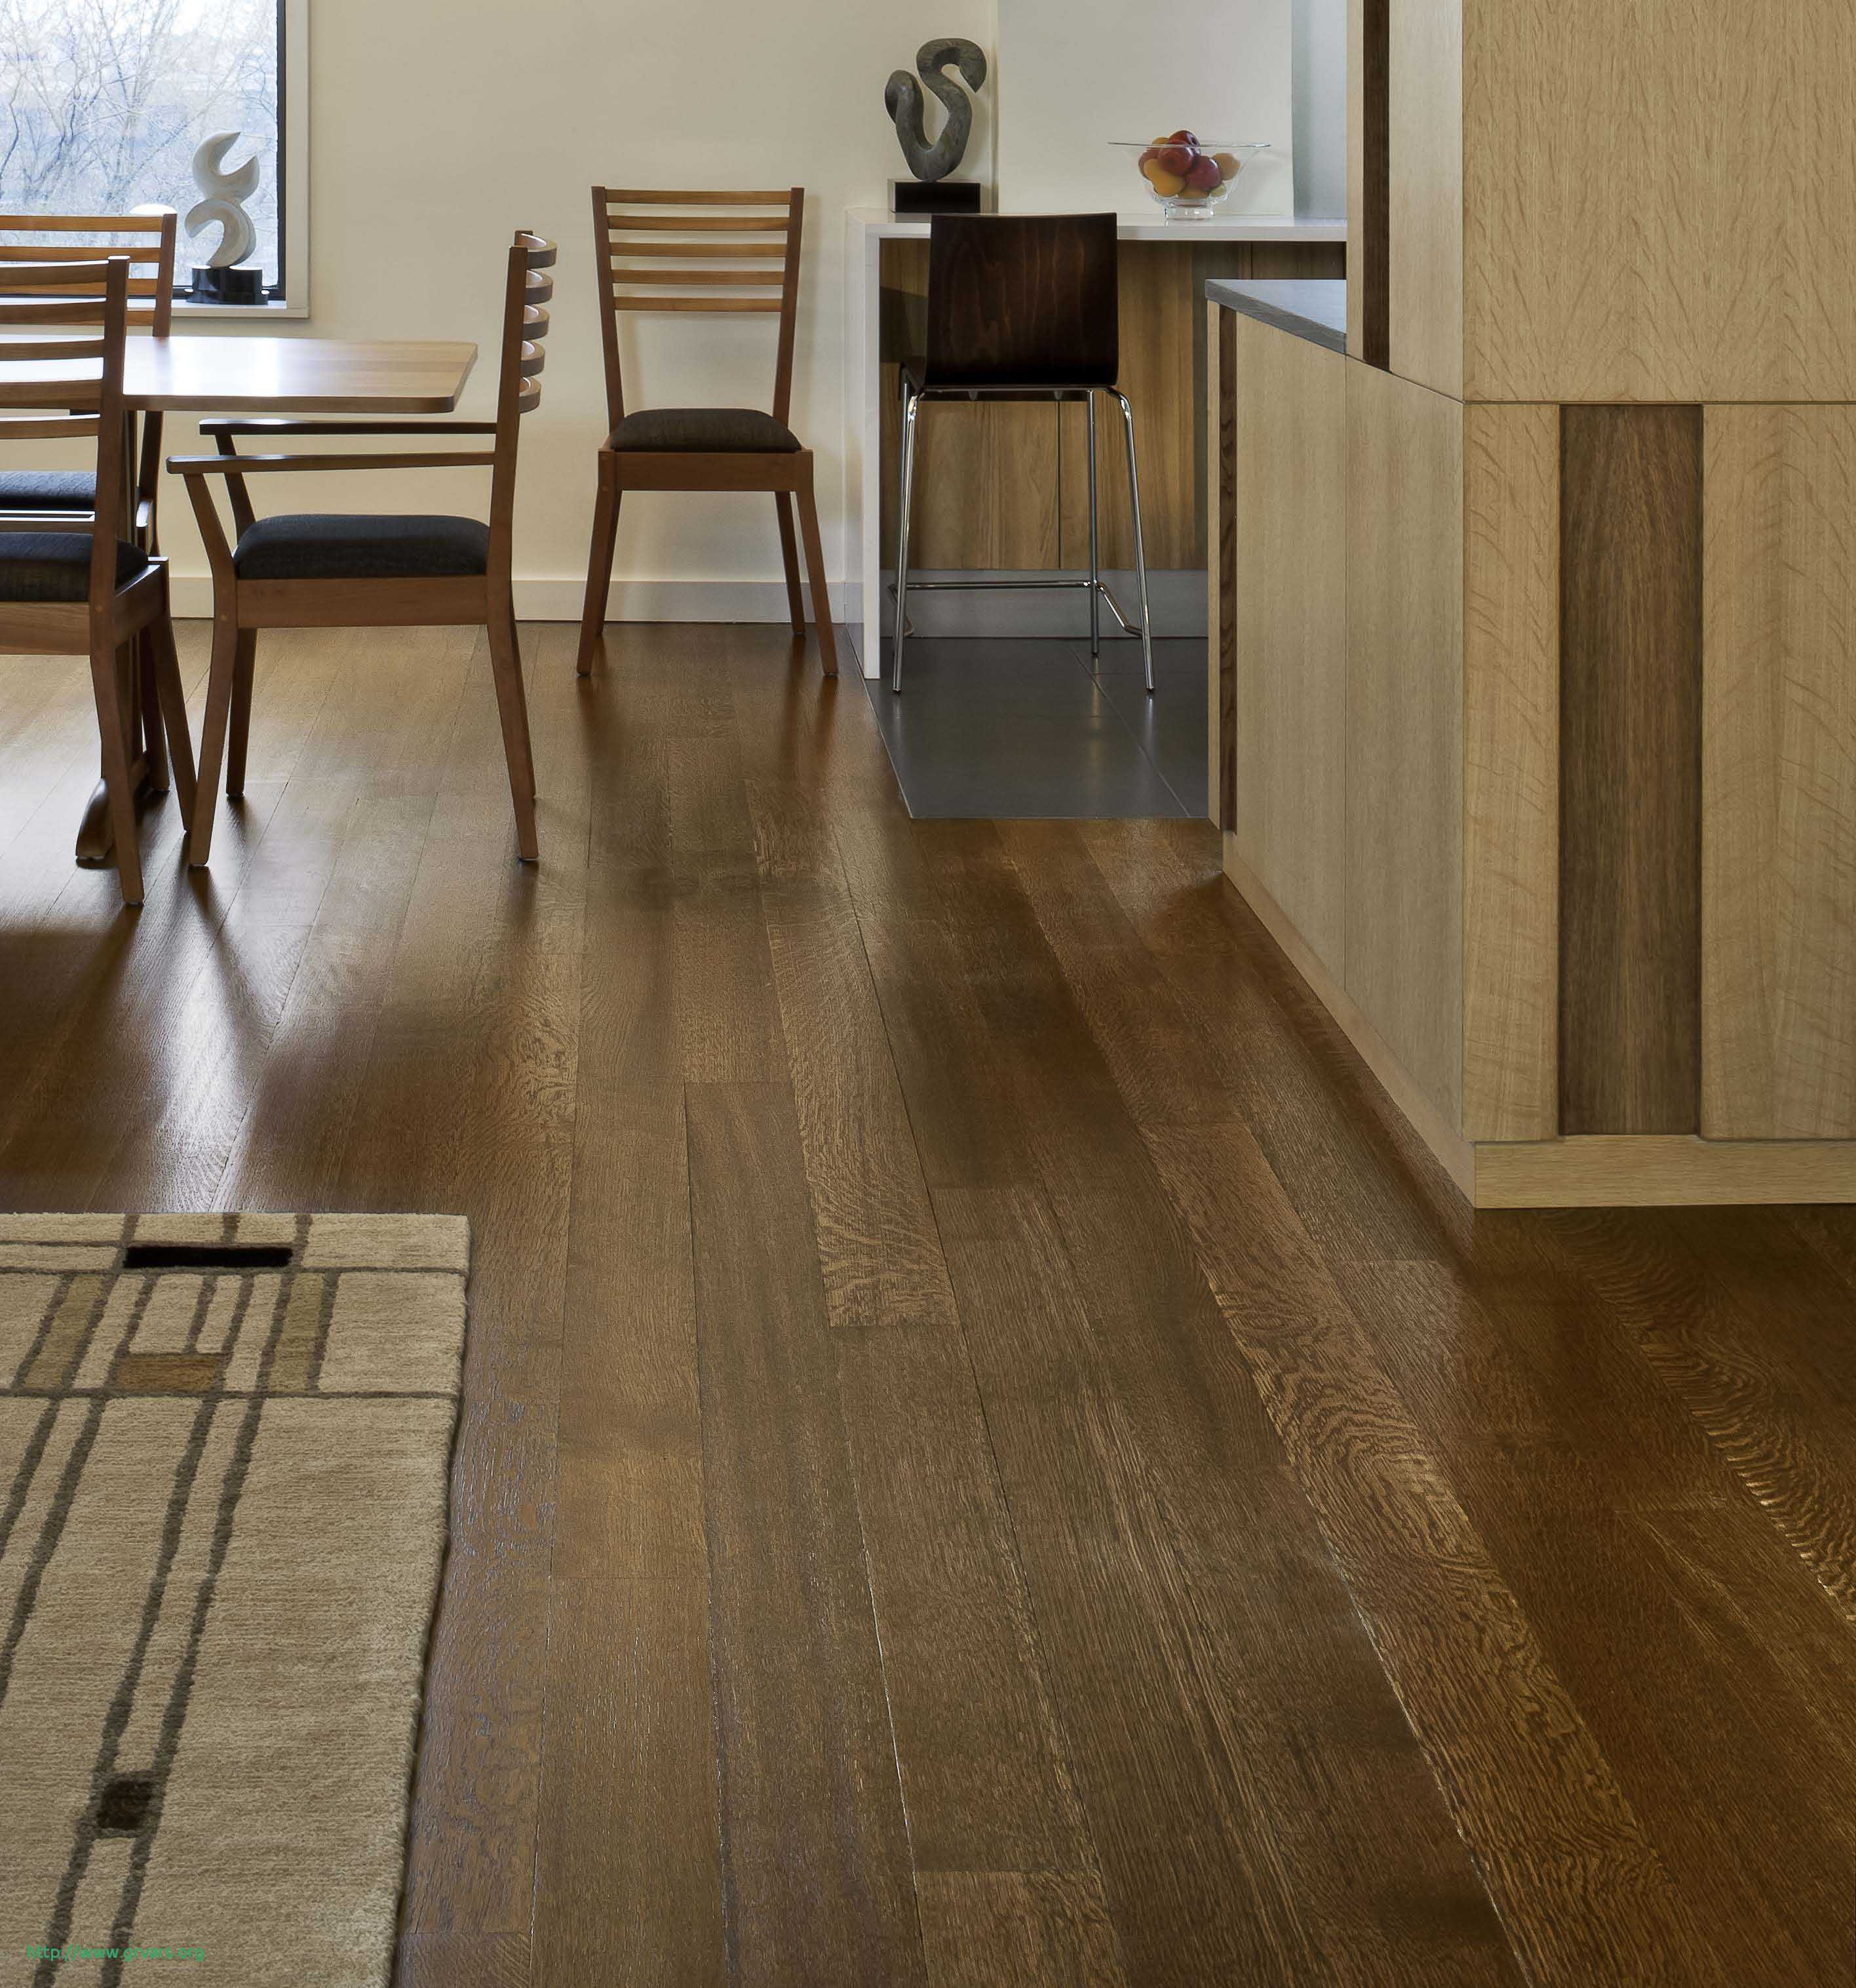 cost of prefinished hardwood flooring vs unfinished of 21 beau cheapest hardwood flooring in toronto ideas blog regarding cheapest hardwood flooring in toronto impressionnant fabulous discount hardwood flooring 0 floor brampton 25 toronto